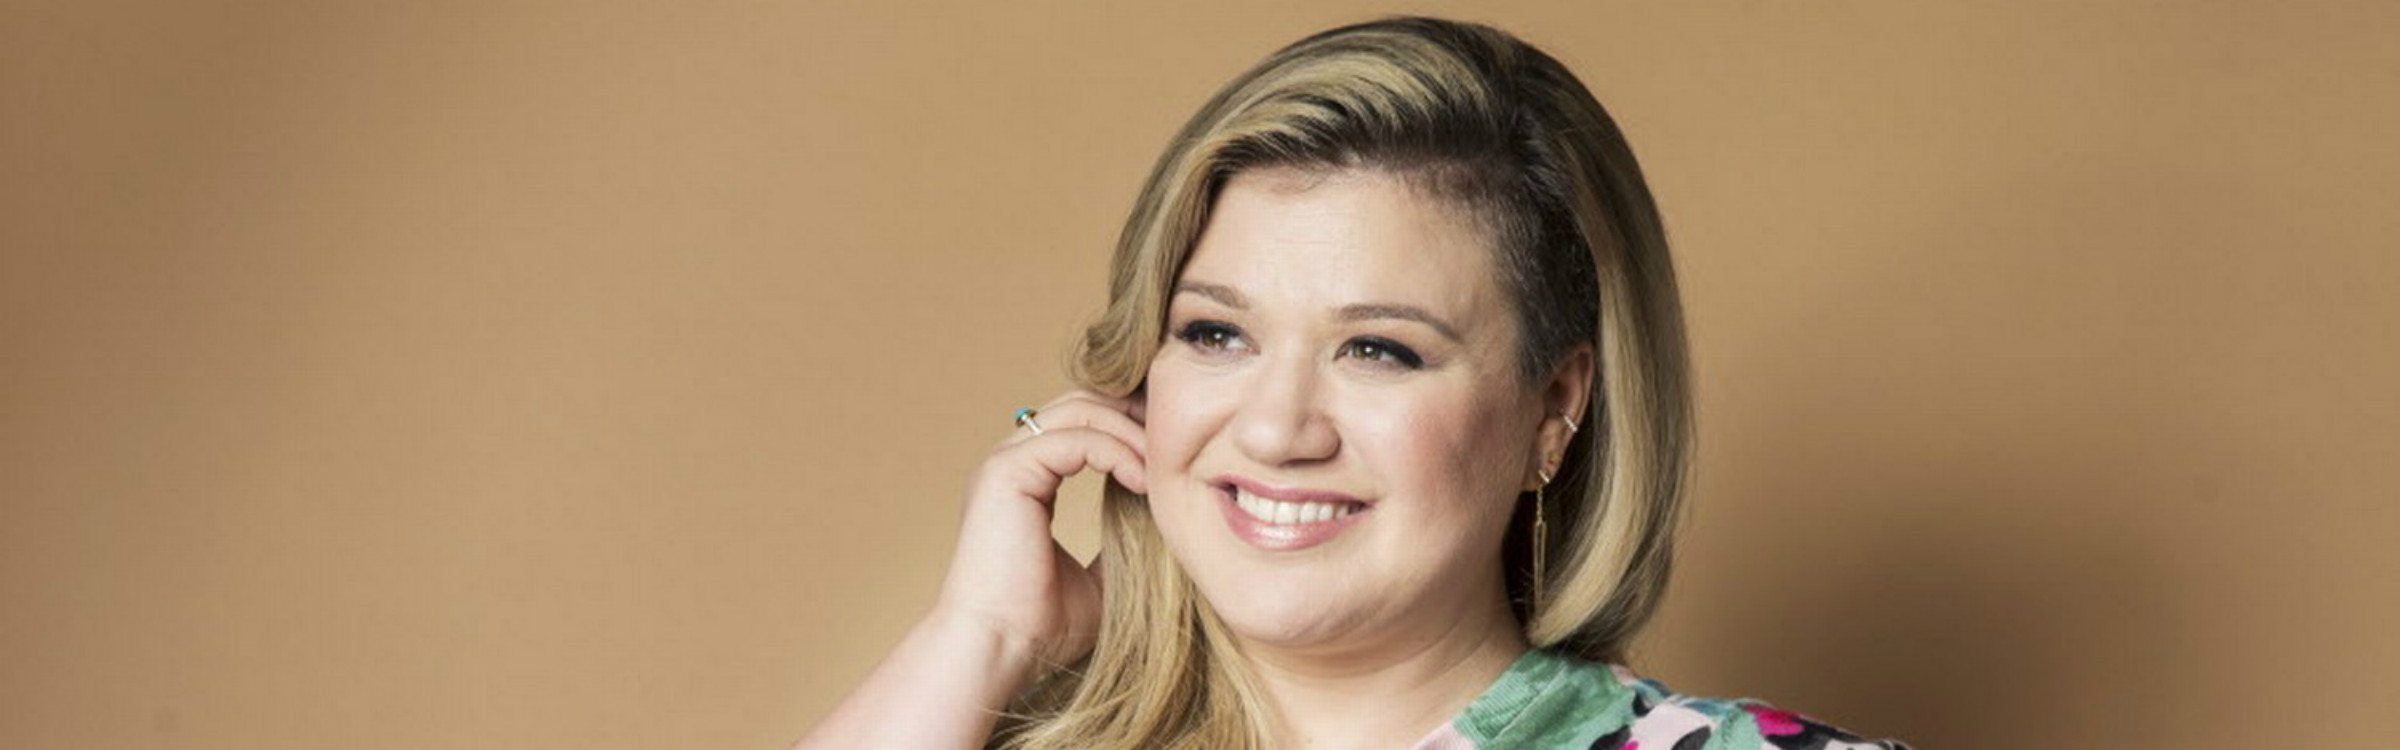 Kelly clarkson header